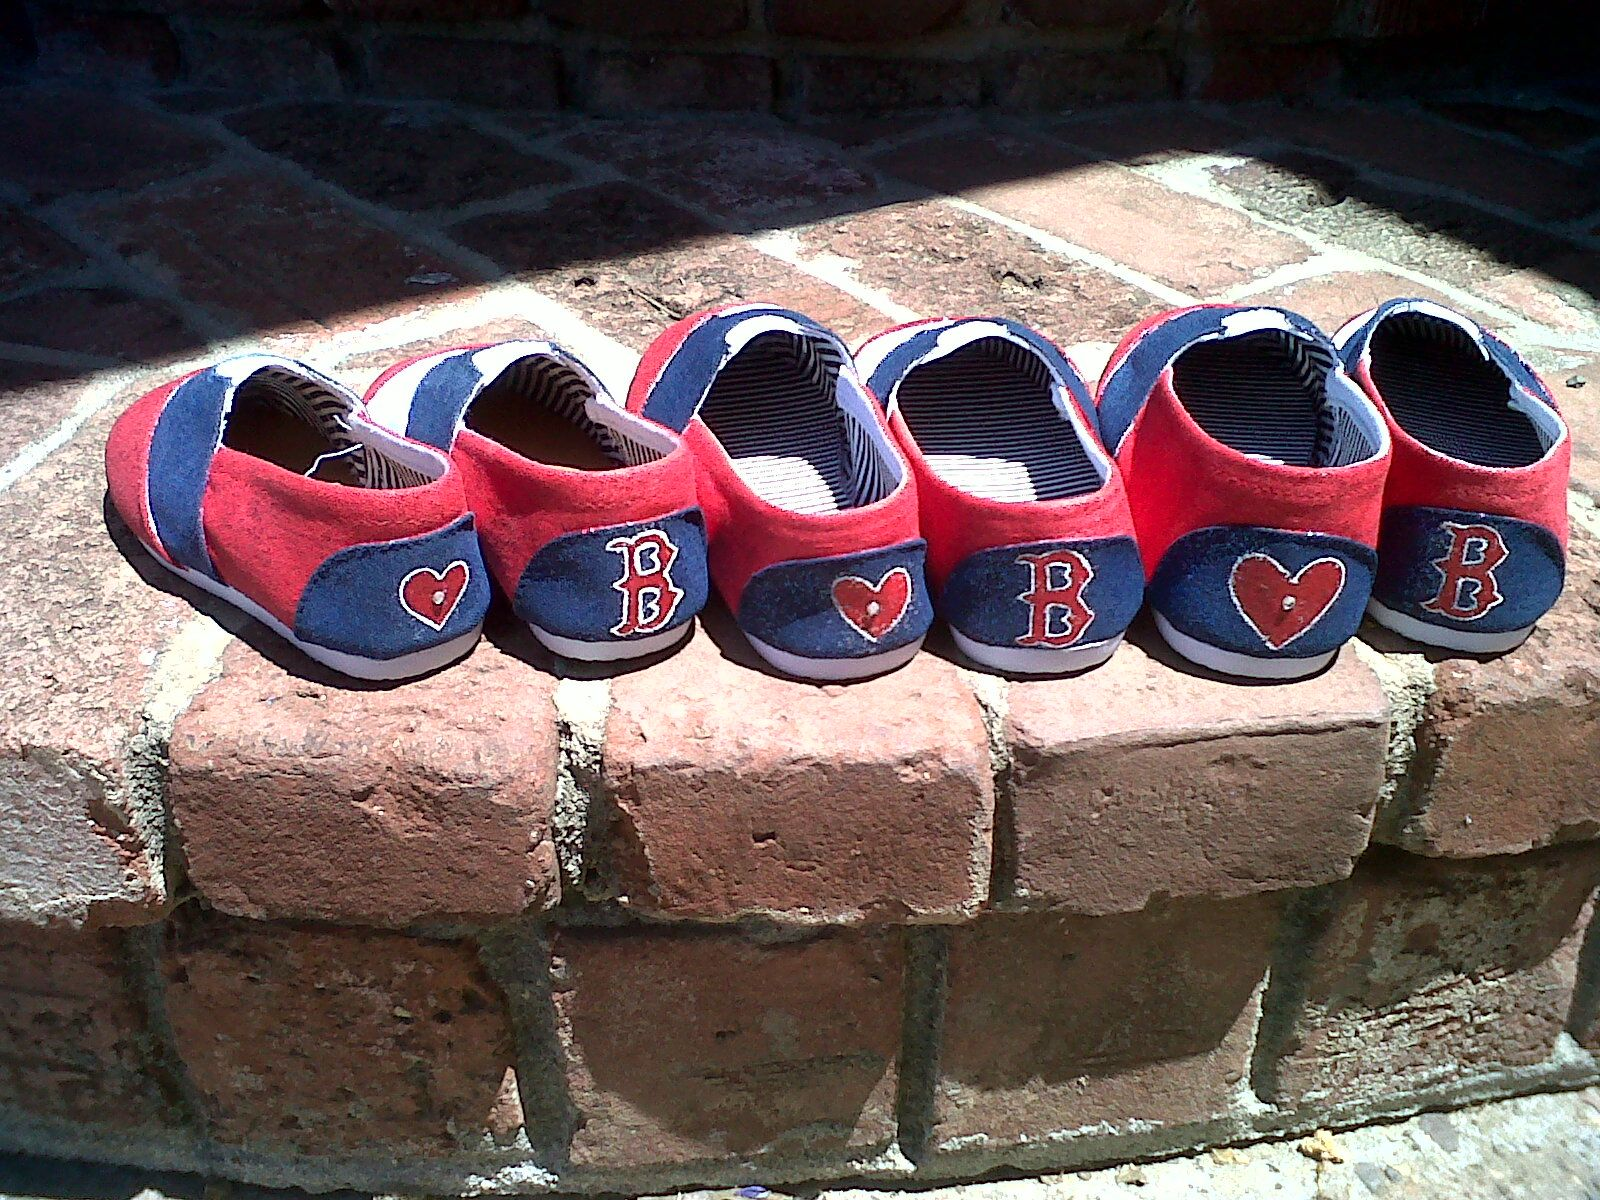 RED SOX Red sox nation, Red sox baby, Red socks fan